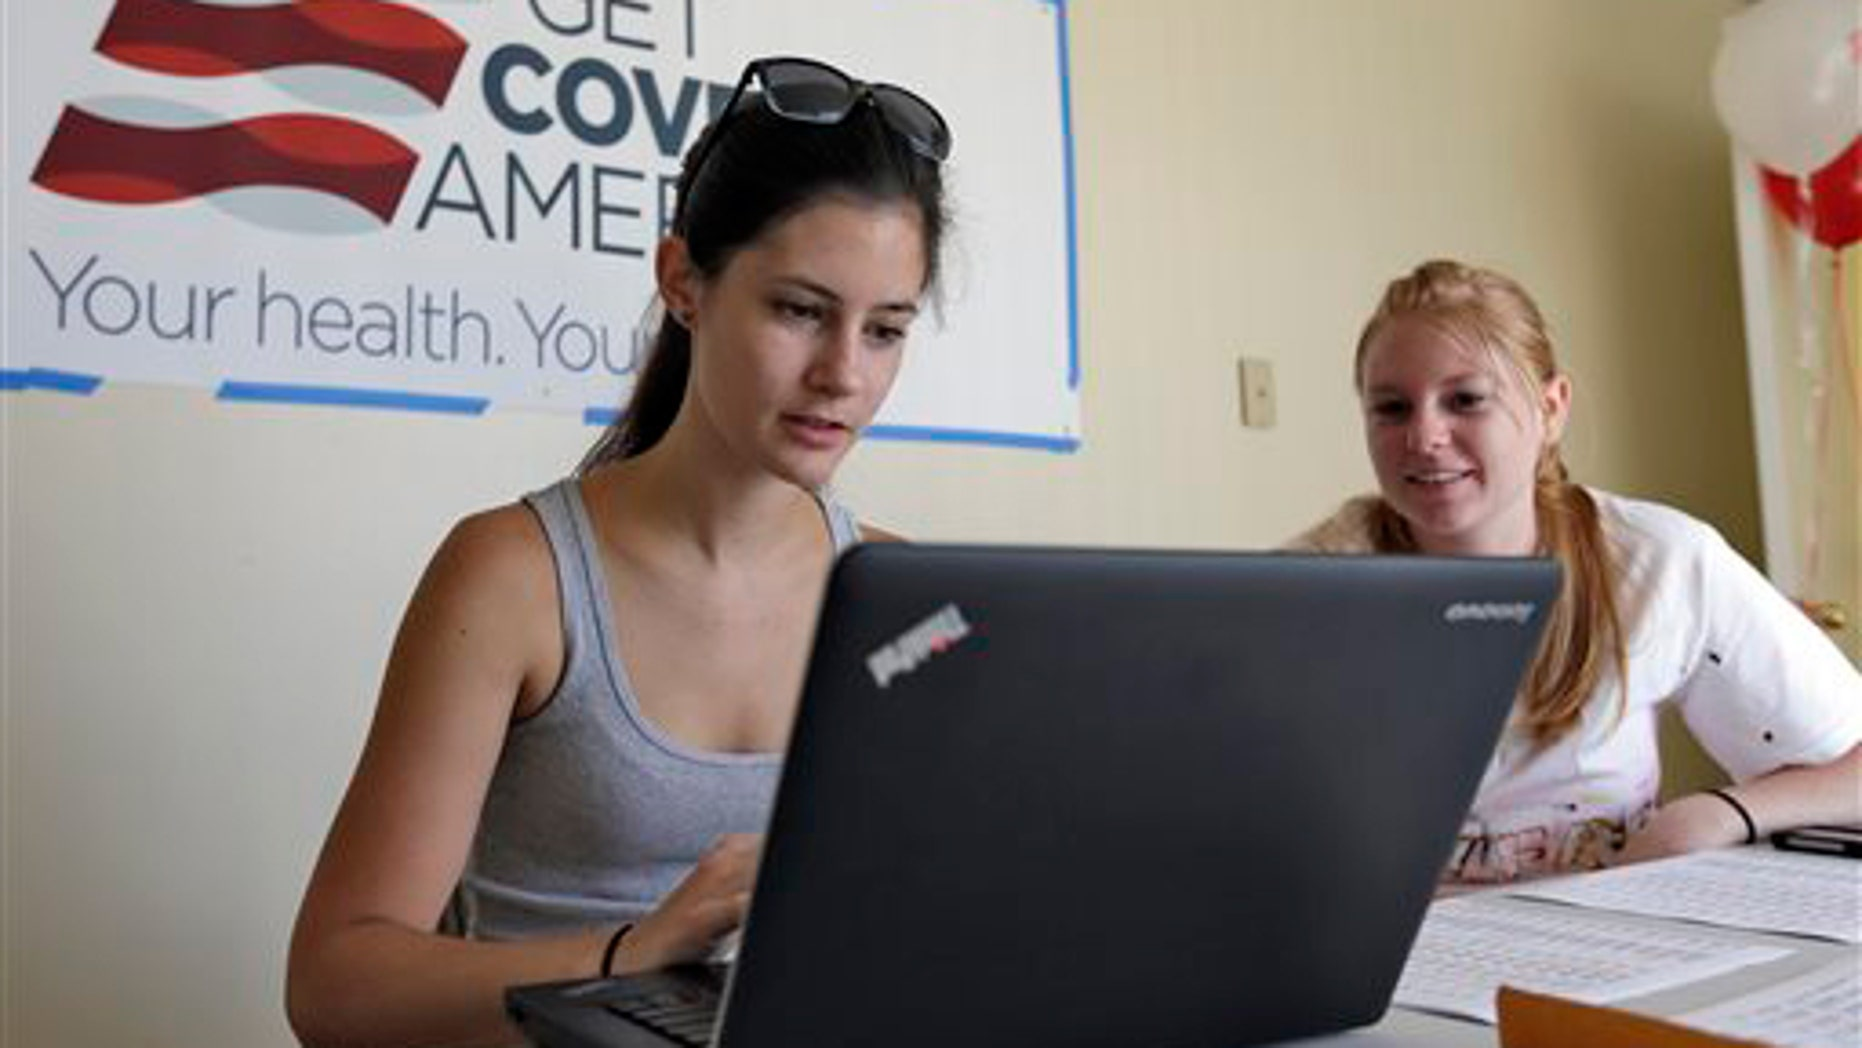 FILE -- Oct. 1, 2013: Ashley Hentze, left, of Lakeland, Fla., gets help signing up for the Affordable Care Act from Kristen Nash, a volunteer with Enroll America, a private, non-profit organization running a grassroots campaign to encourage people to sign up for health care in Tampa, Fla.